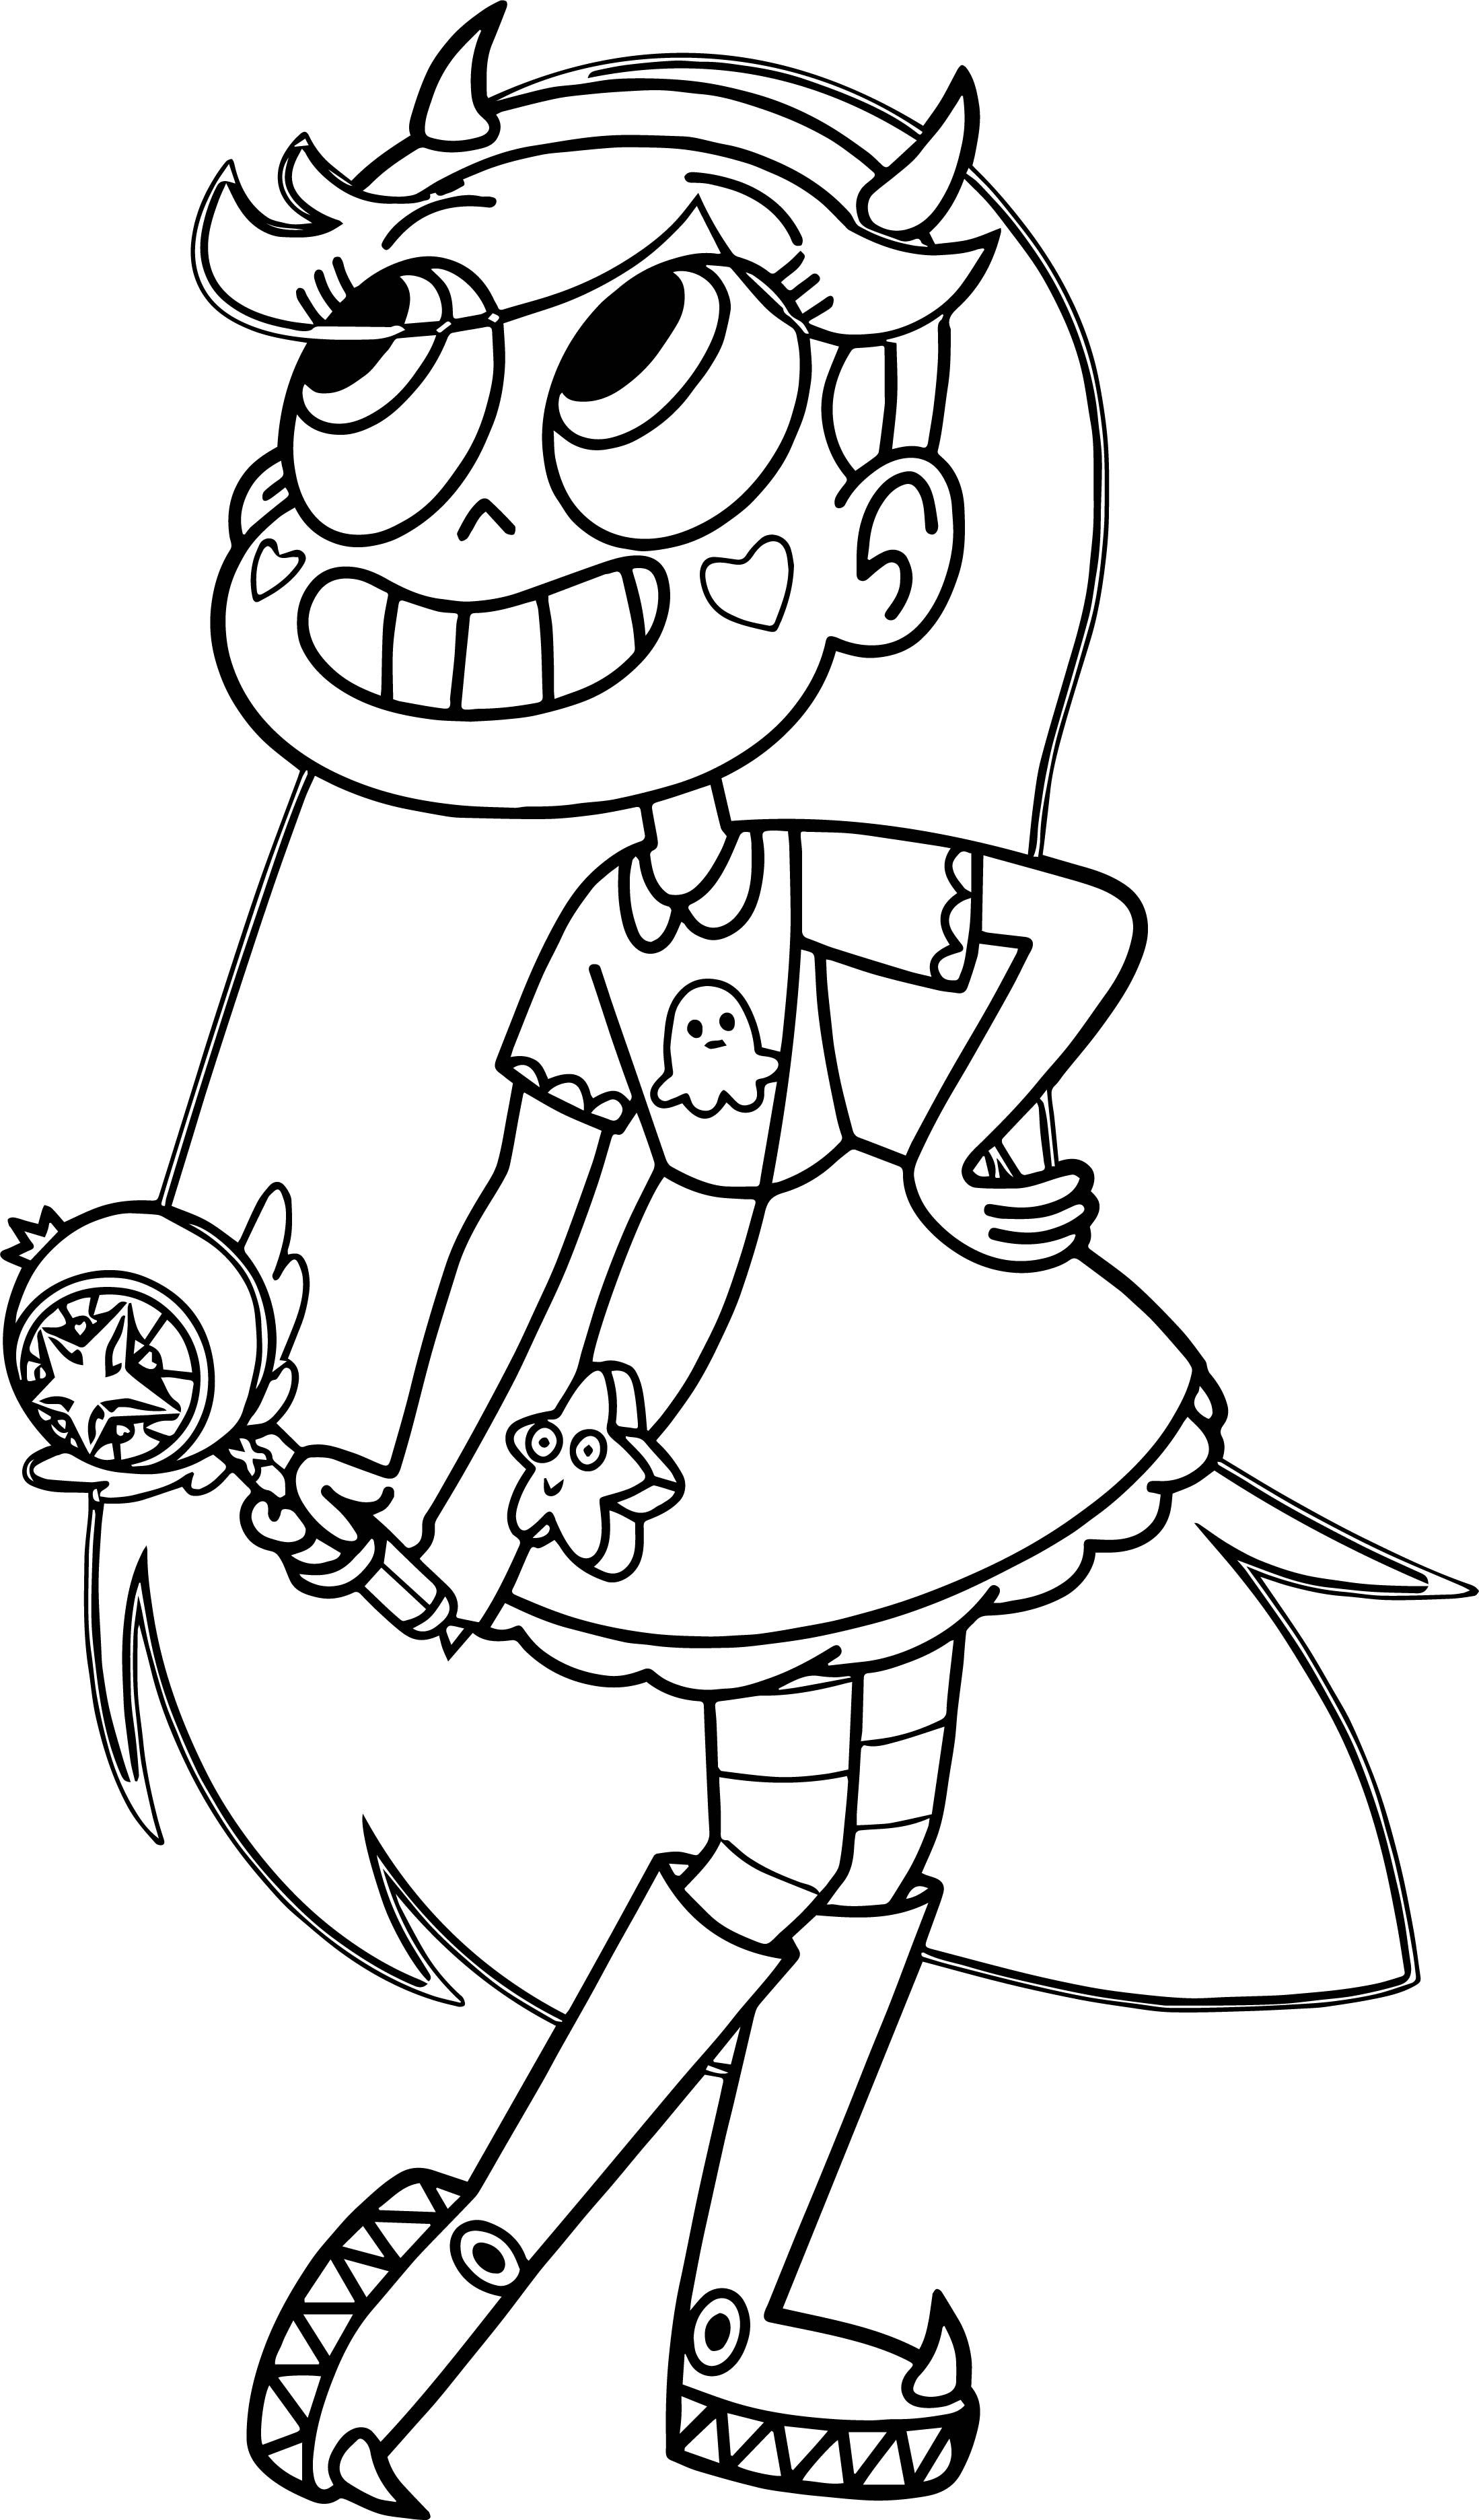 star vs the forces of evil coloring pages cool Star Vs The Forces Of Evil Butterfly Coloring Page | Star vs  star vs the forces of evil coloring pages